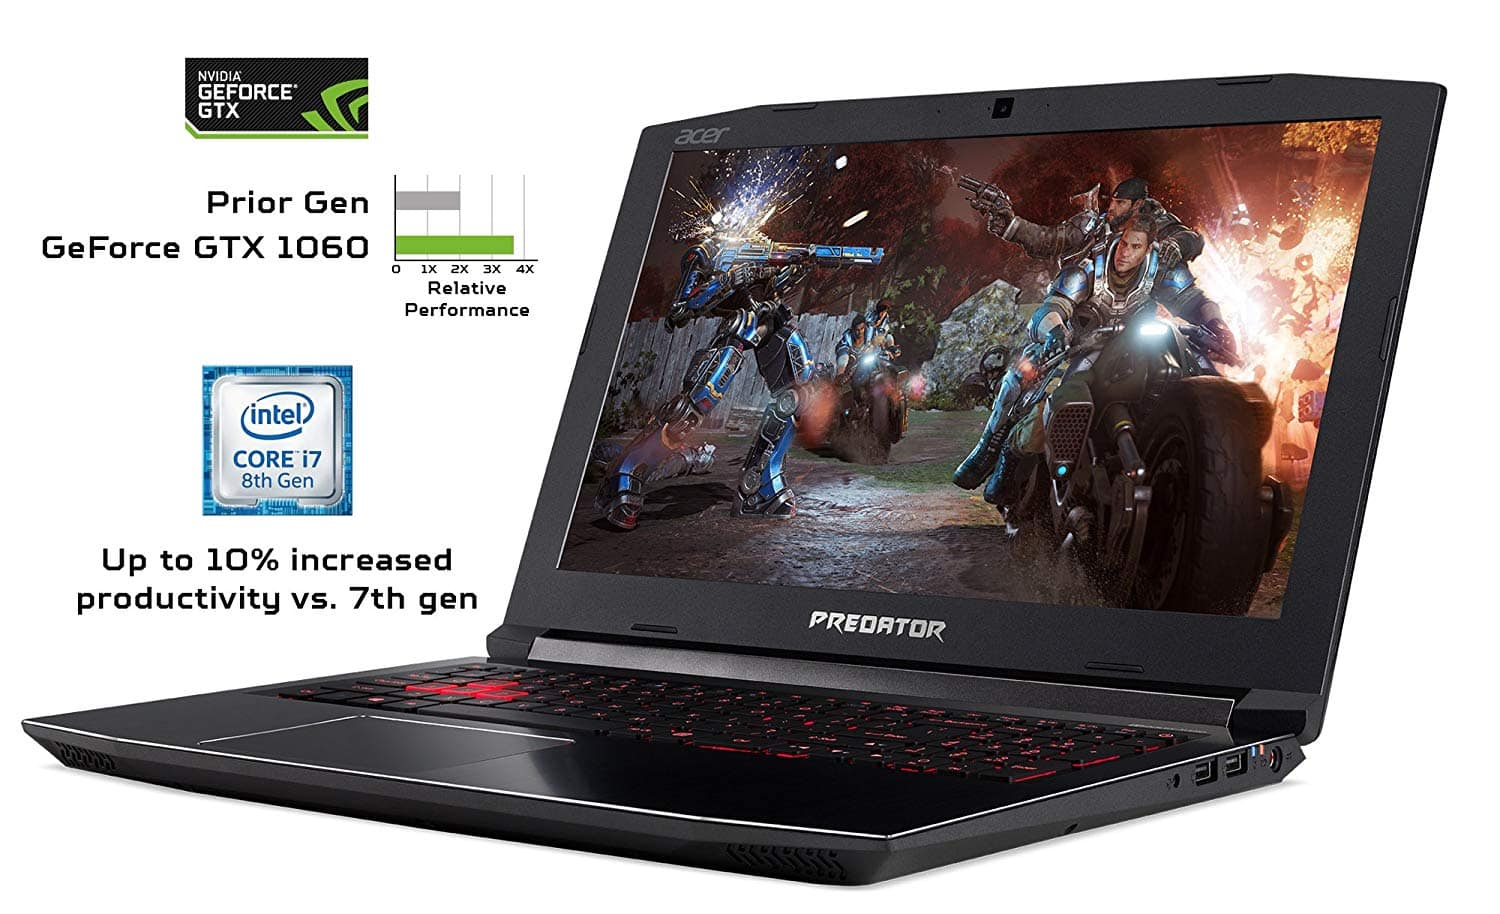 Best Gaming Laptop under 2000 [Top 10 Guide]